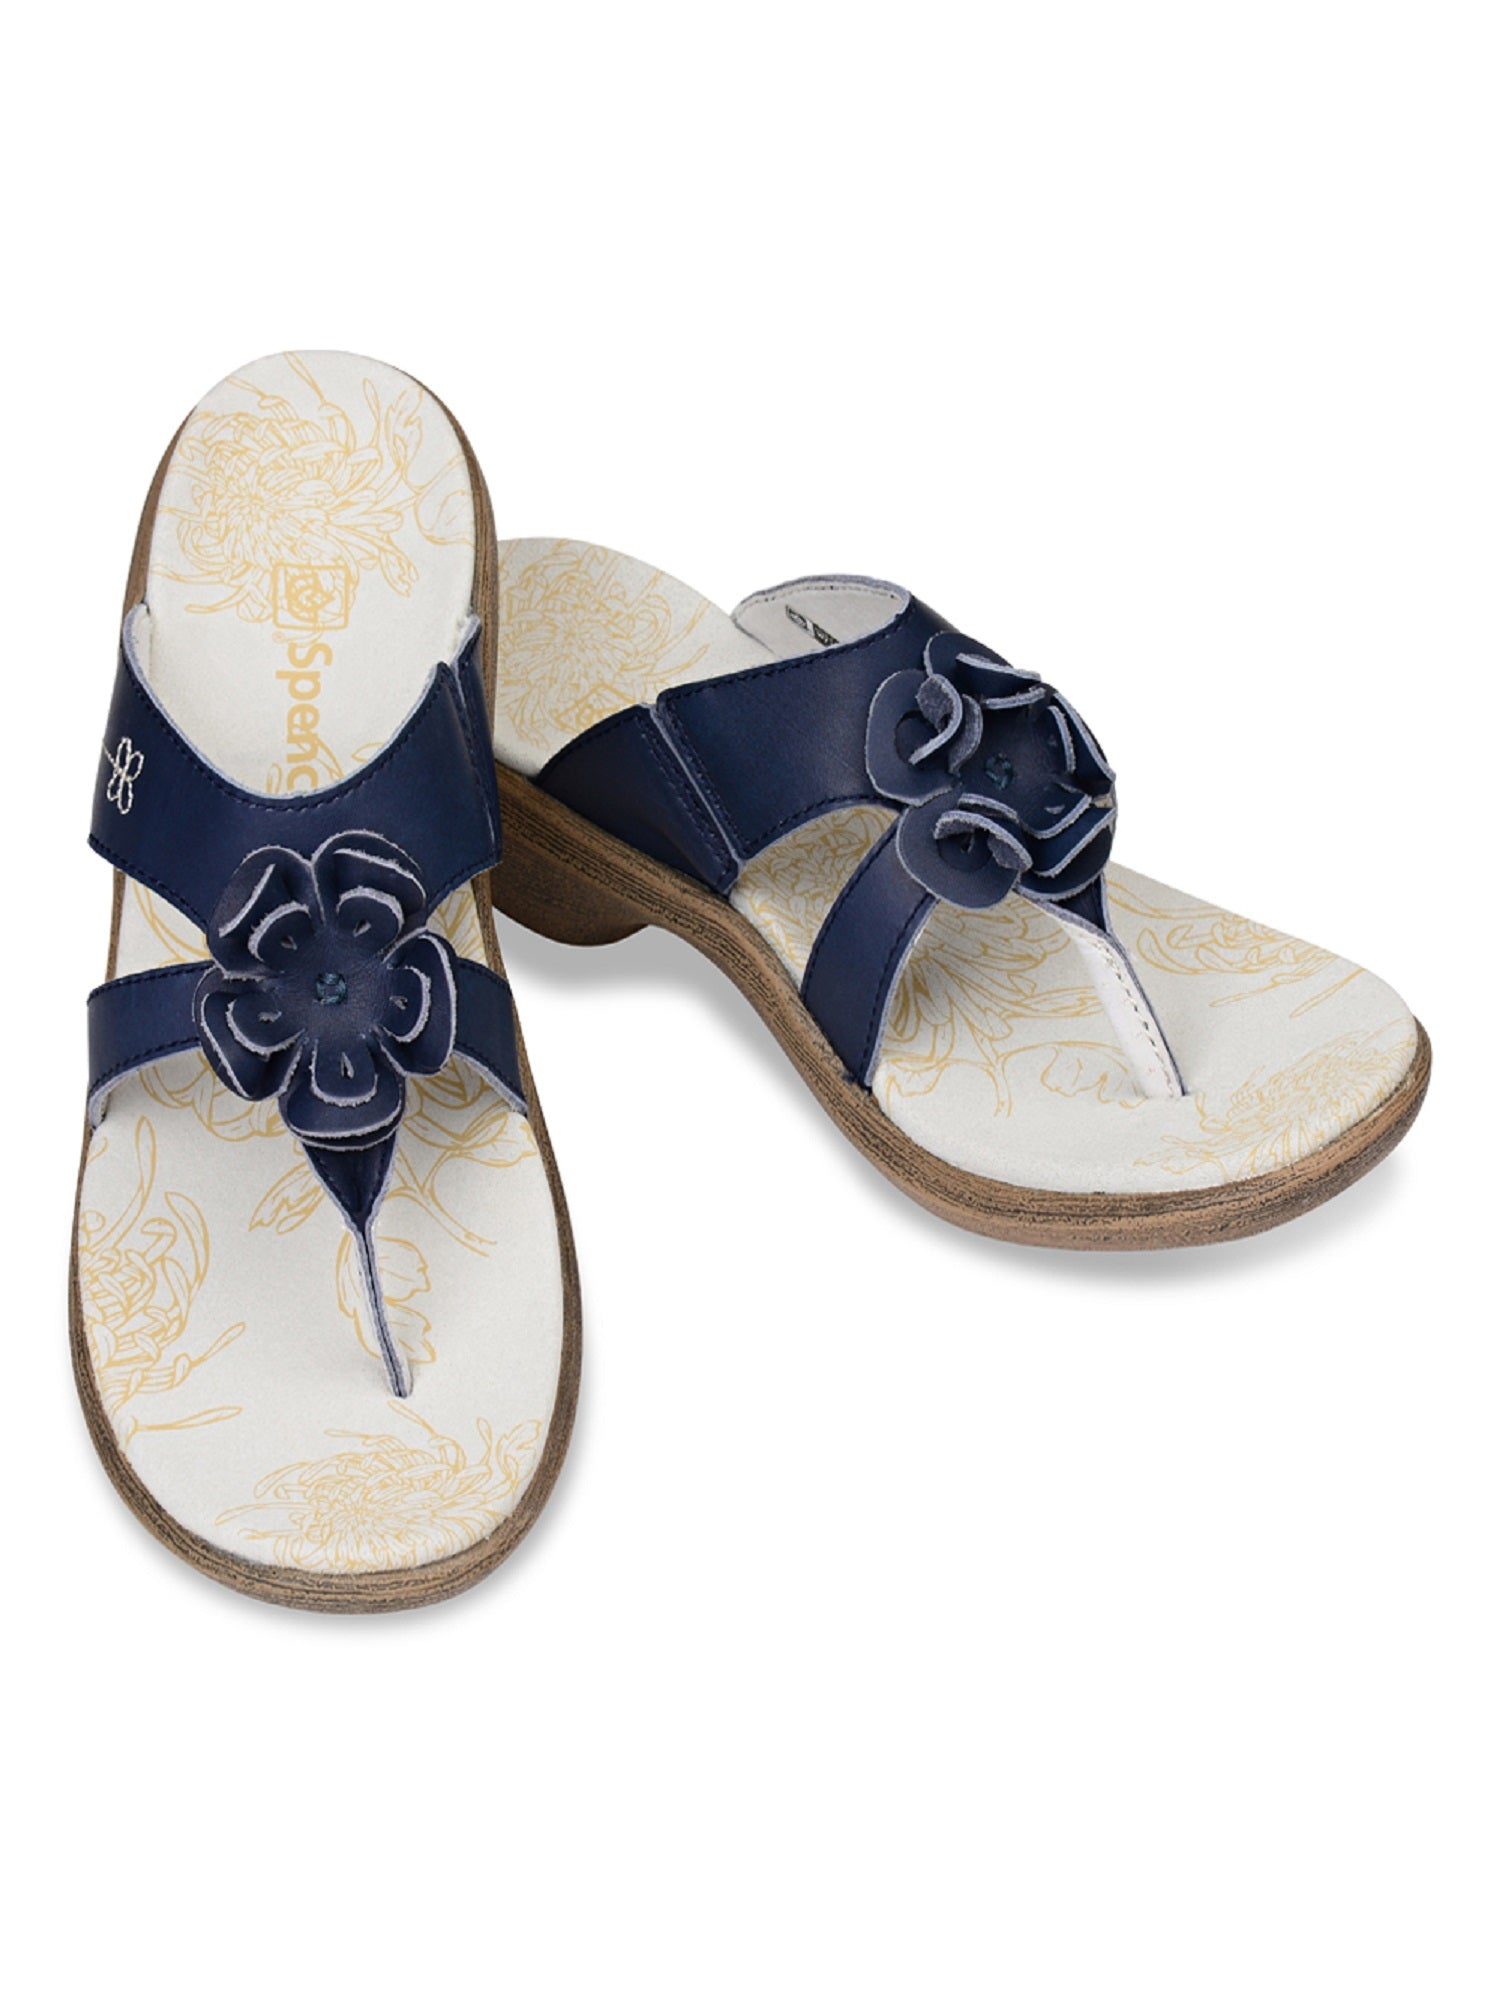 Spenco Rose - Supportive Casual Sandals - Navy Women's - Size 7